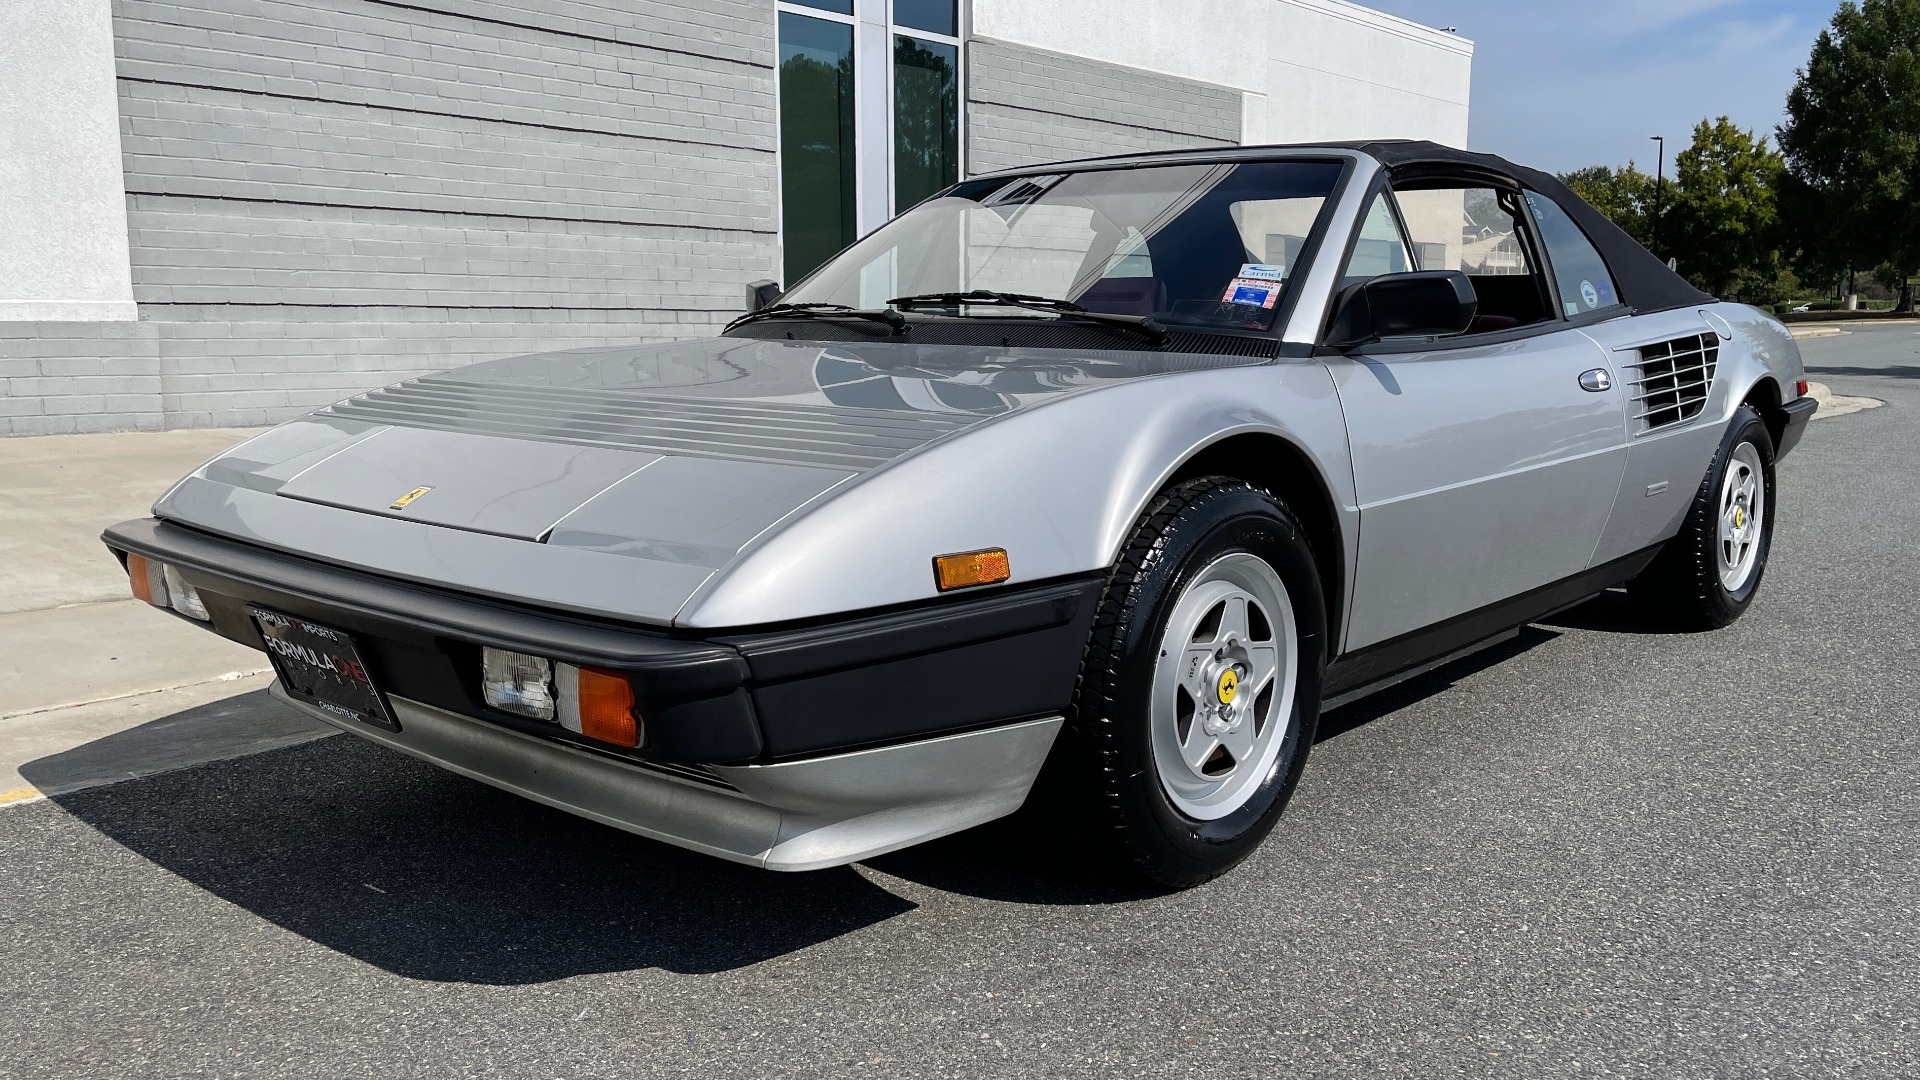 Used 1984 Ferrari MONDIAL 2+2 CABRIOLET / MID-ENGINE 3.0L V8 240HP / 5-SPEED MANUAL / LOW MILES for sale Call for price at Formula Imports in Charlotte NC 28227 3